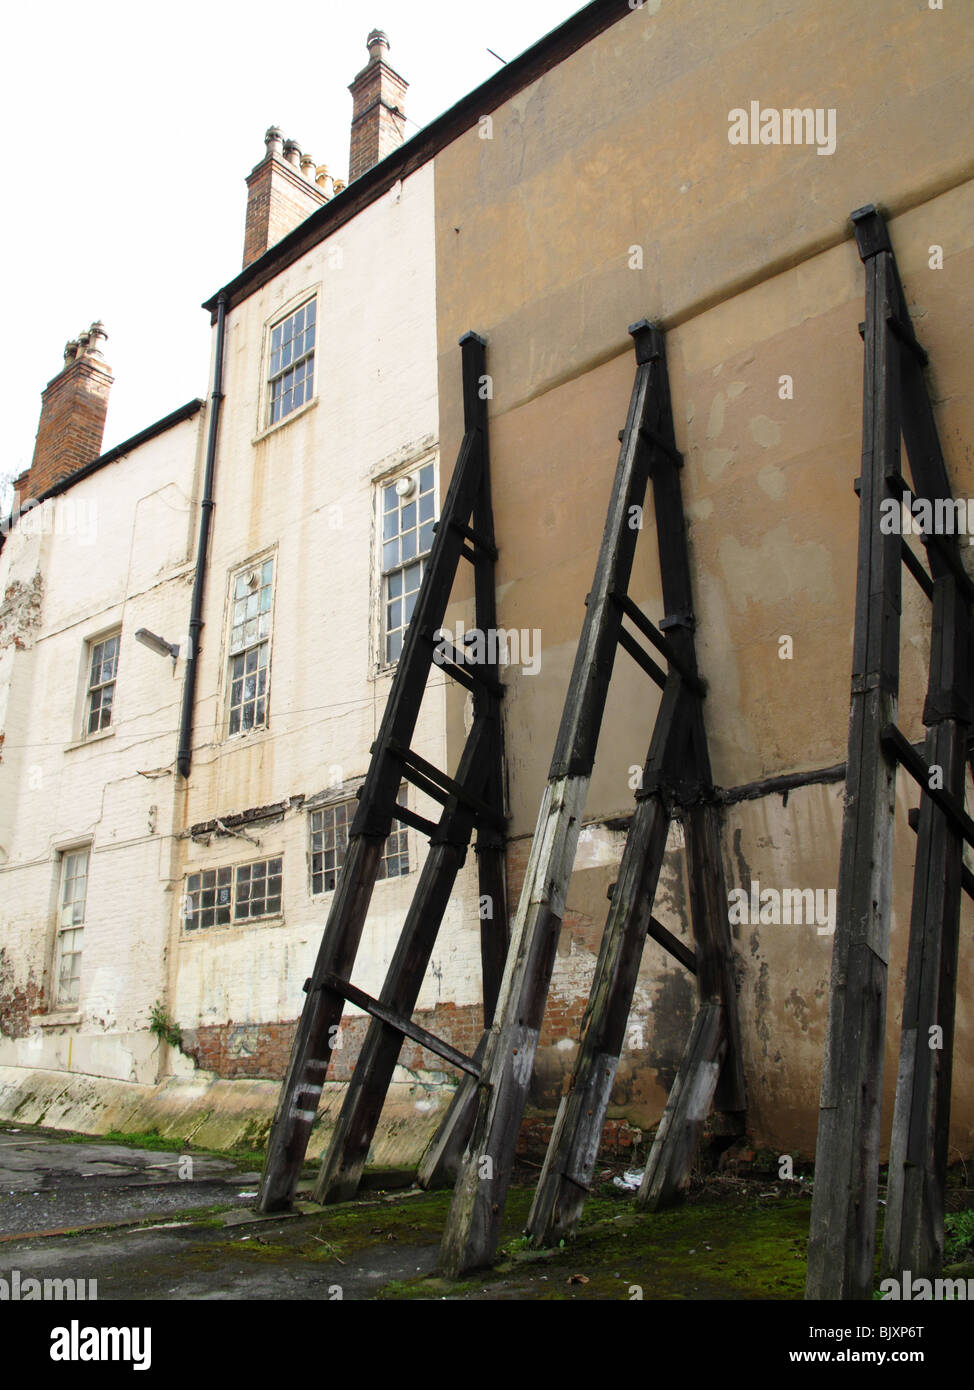 Structural supports on an old building in a U.K. city. - Stock Image